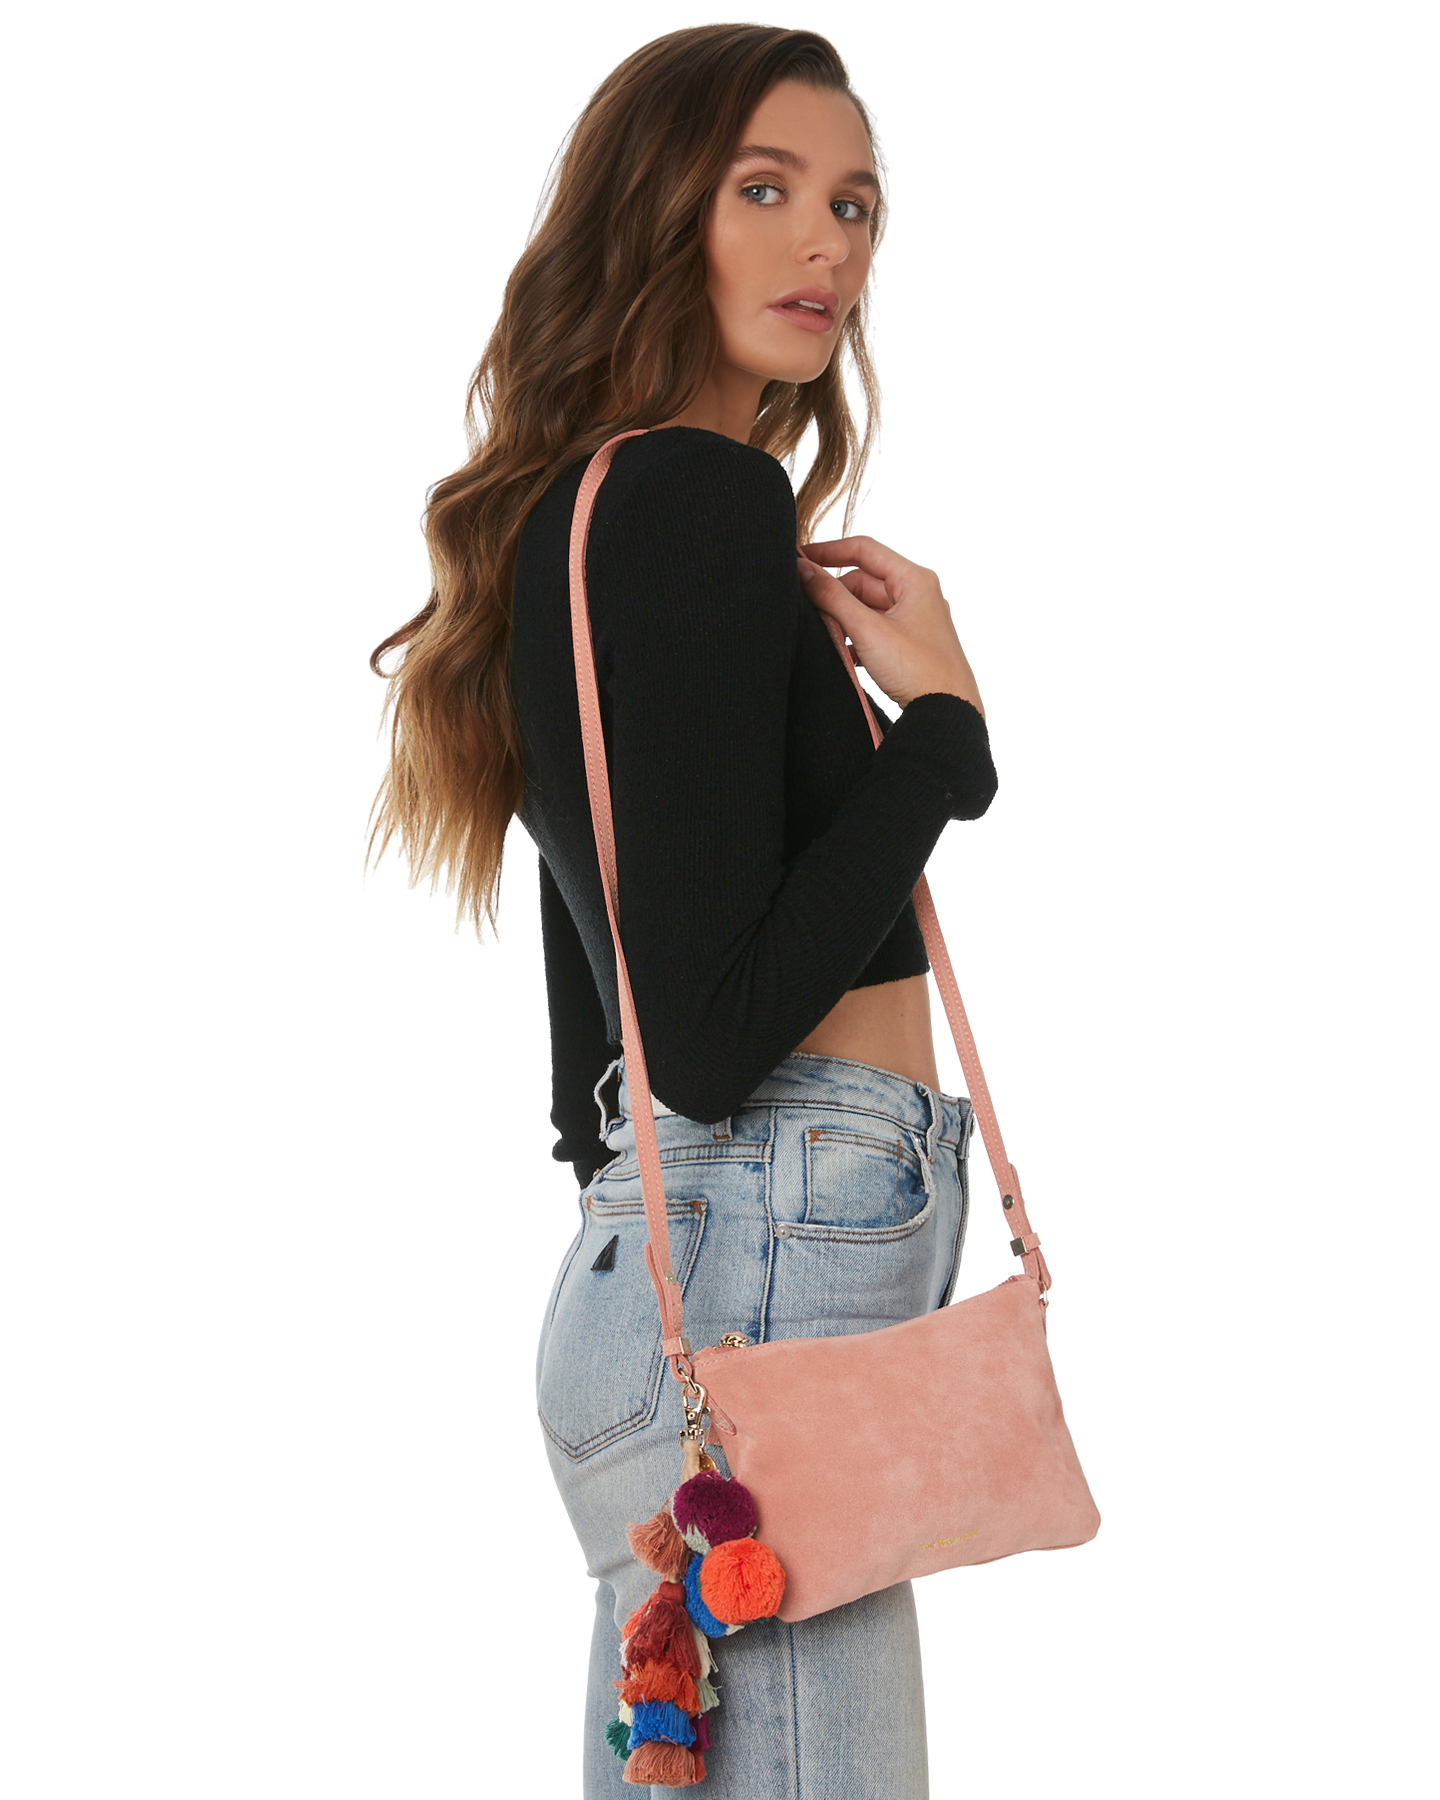 New-The-Wolf-Gang-Women-039-s-Rio-Cross-Body-Bag-Suede-Canvas-Pink thumbnail 19